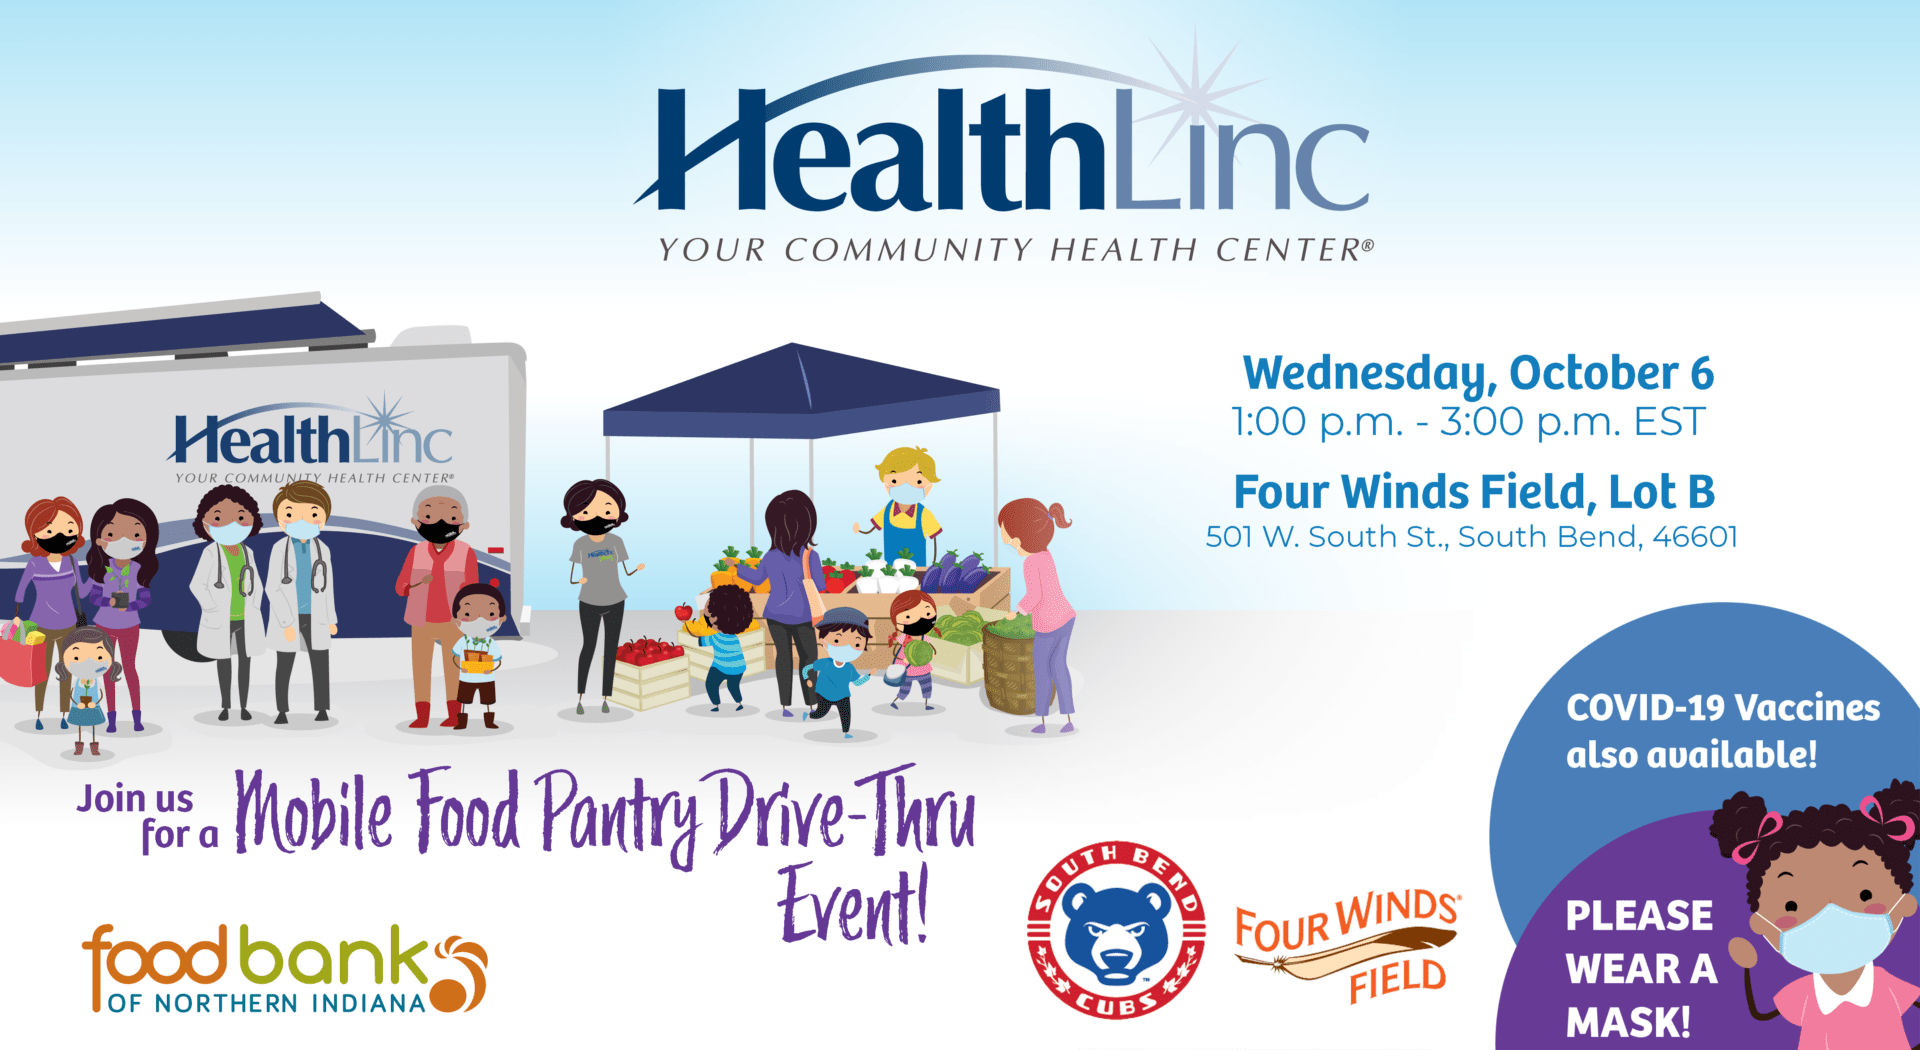 Image promoting the South Bend drive-thru mobile food pantry, hosted in part by HealthLinc, the Food Bank of Northern Indiana, the South Bend Cubs and Four Winds Field.